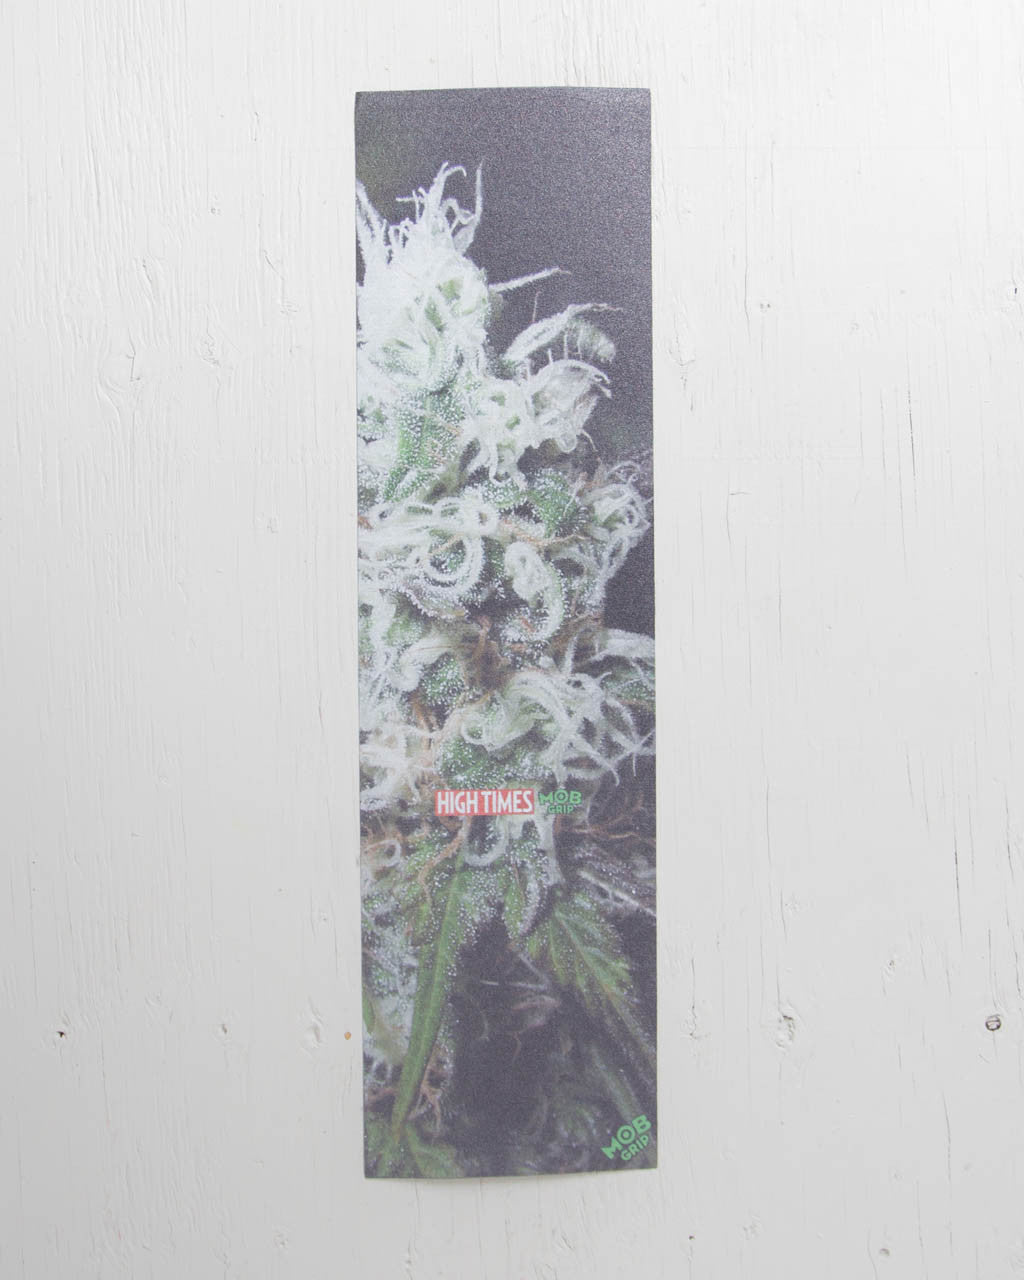 7ce57cc99ad 48933-mob-grip-high-times-assorted-weed-1.jpg v 1542939958